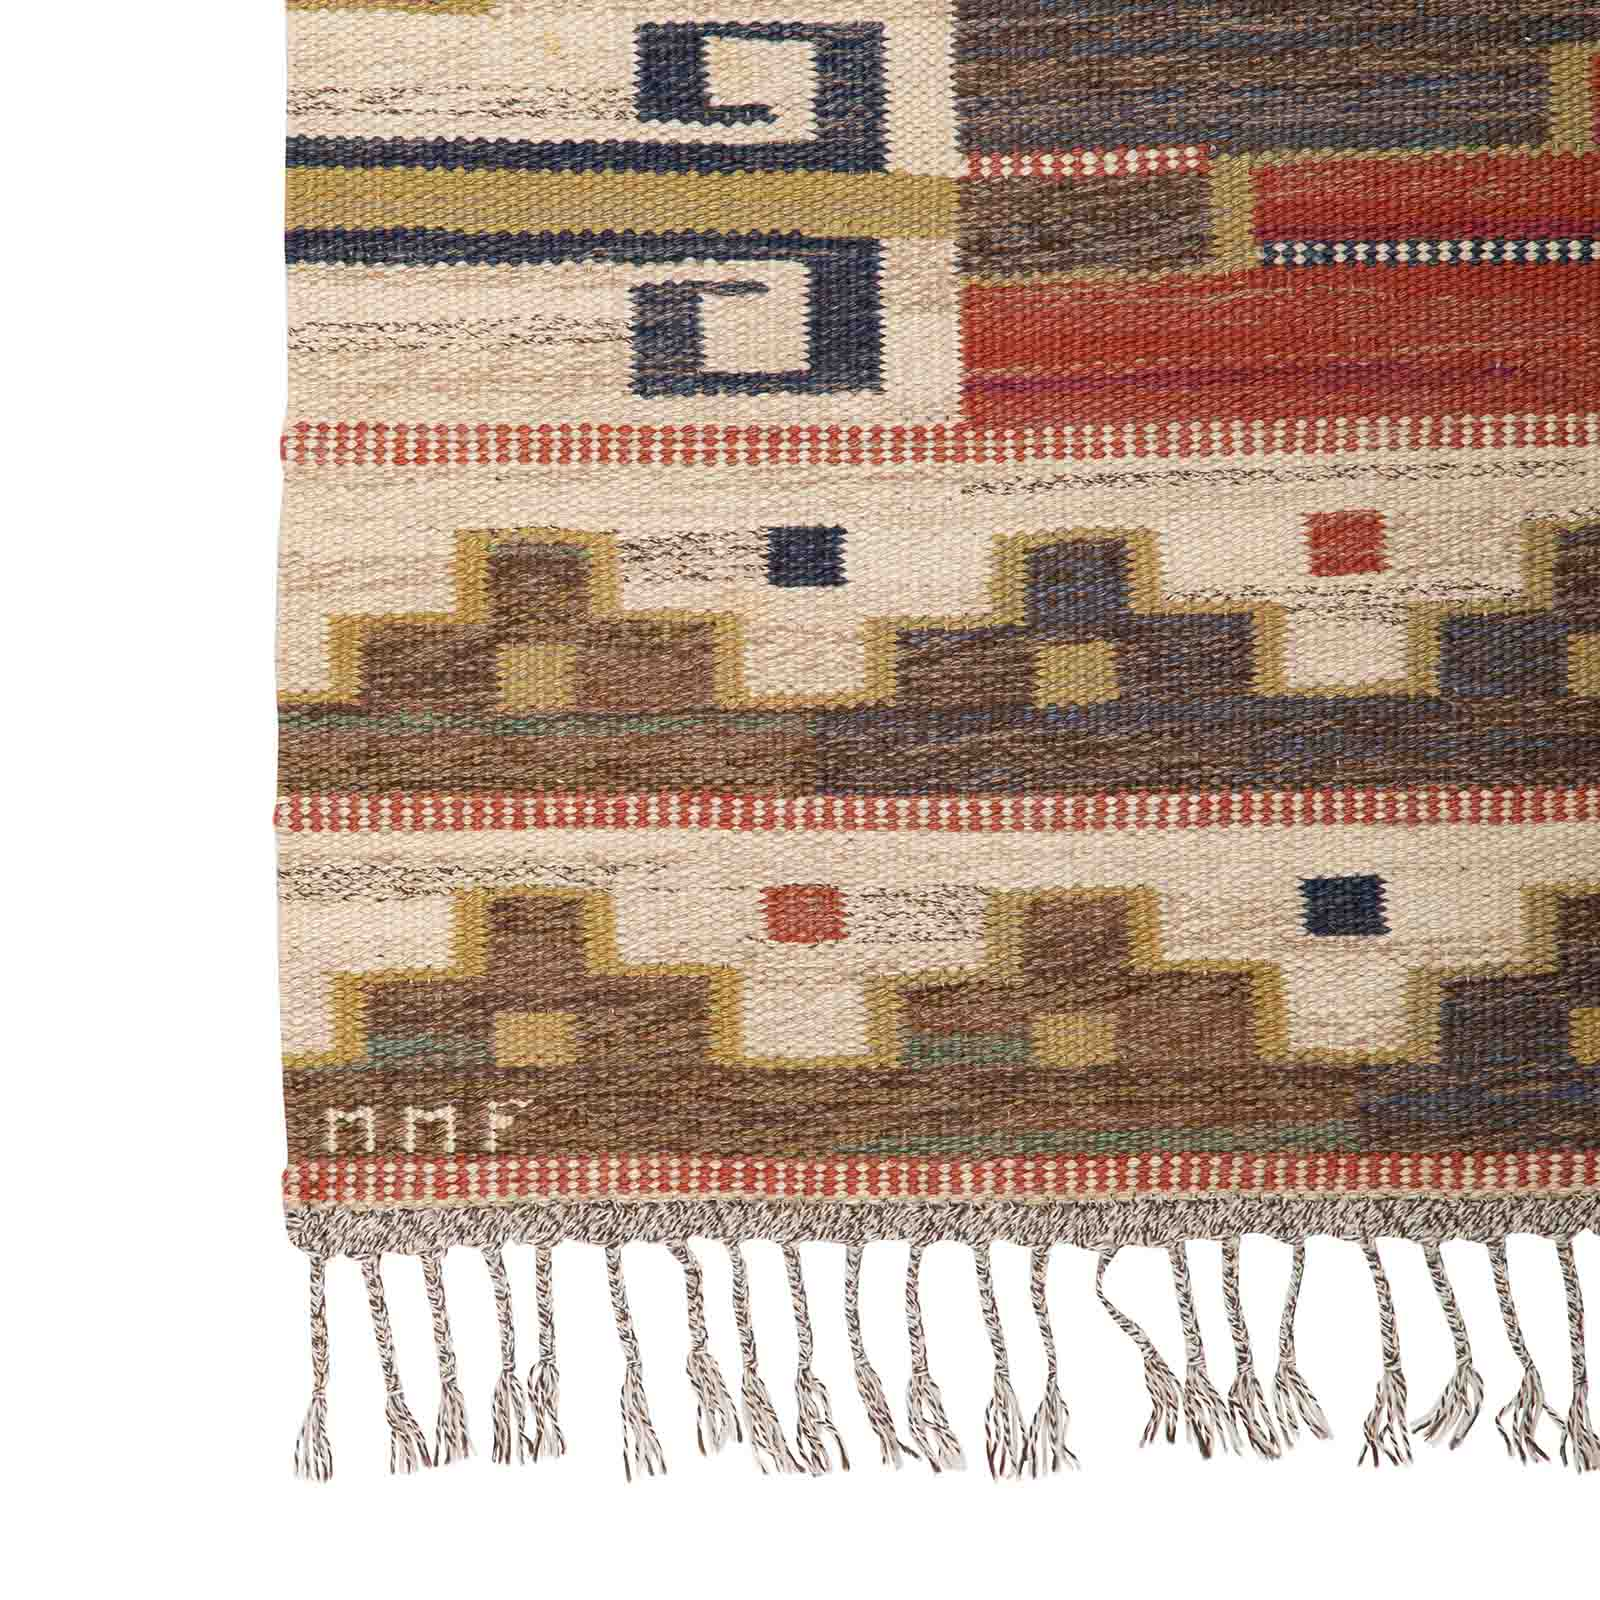 An early rug, 'Bruna Heden'